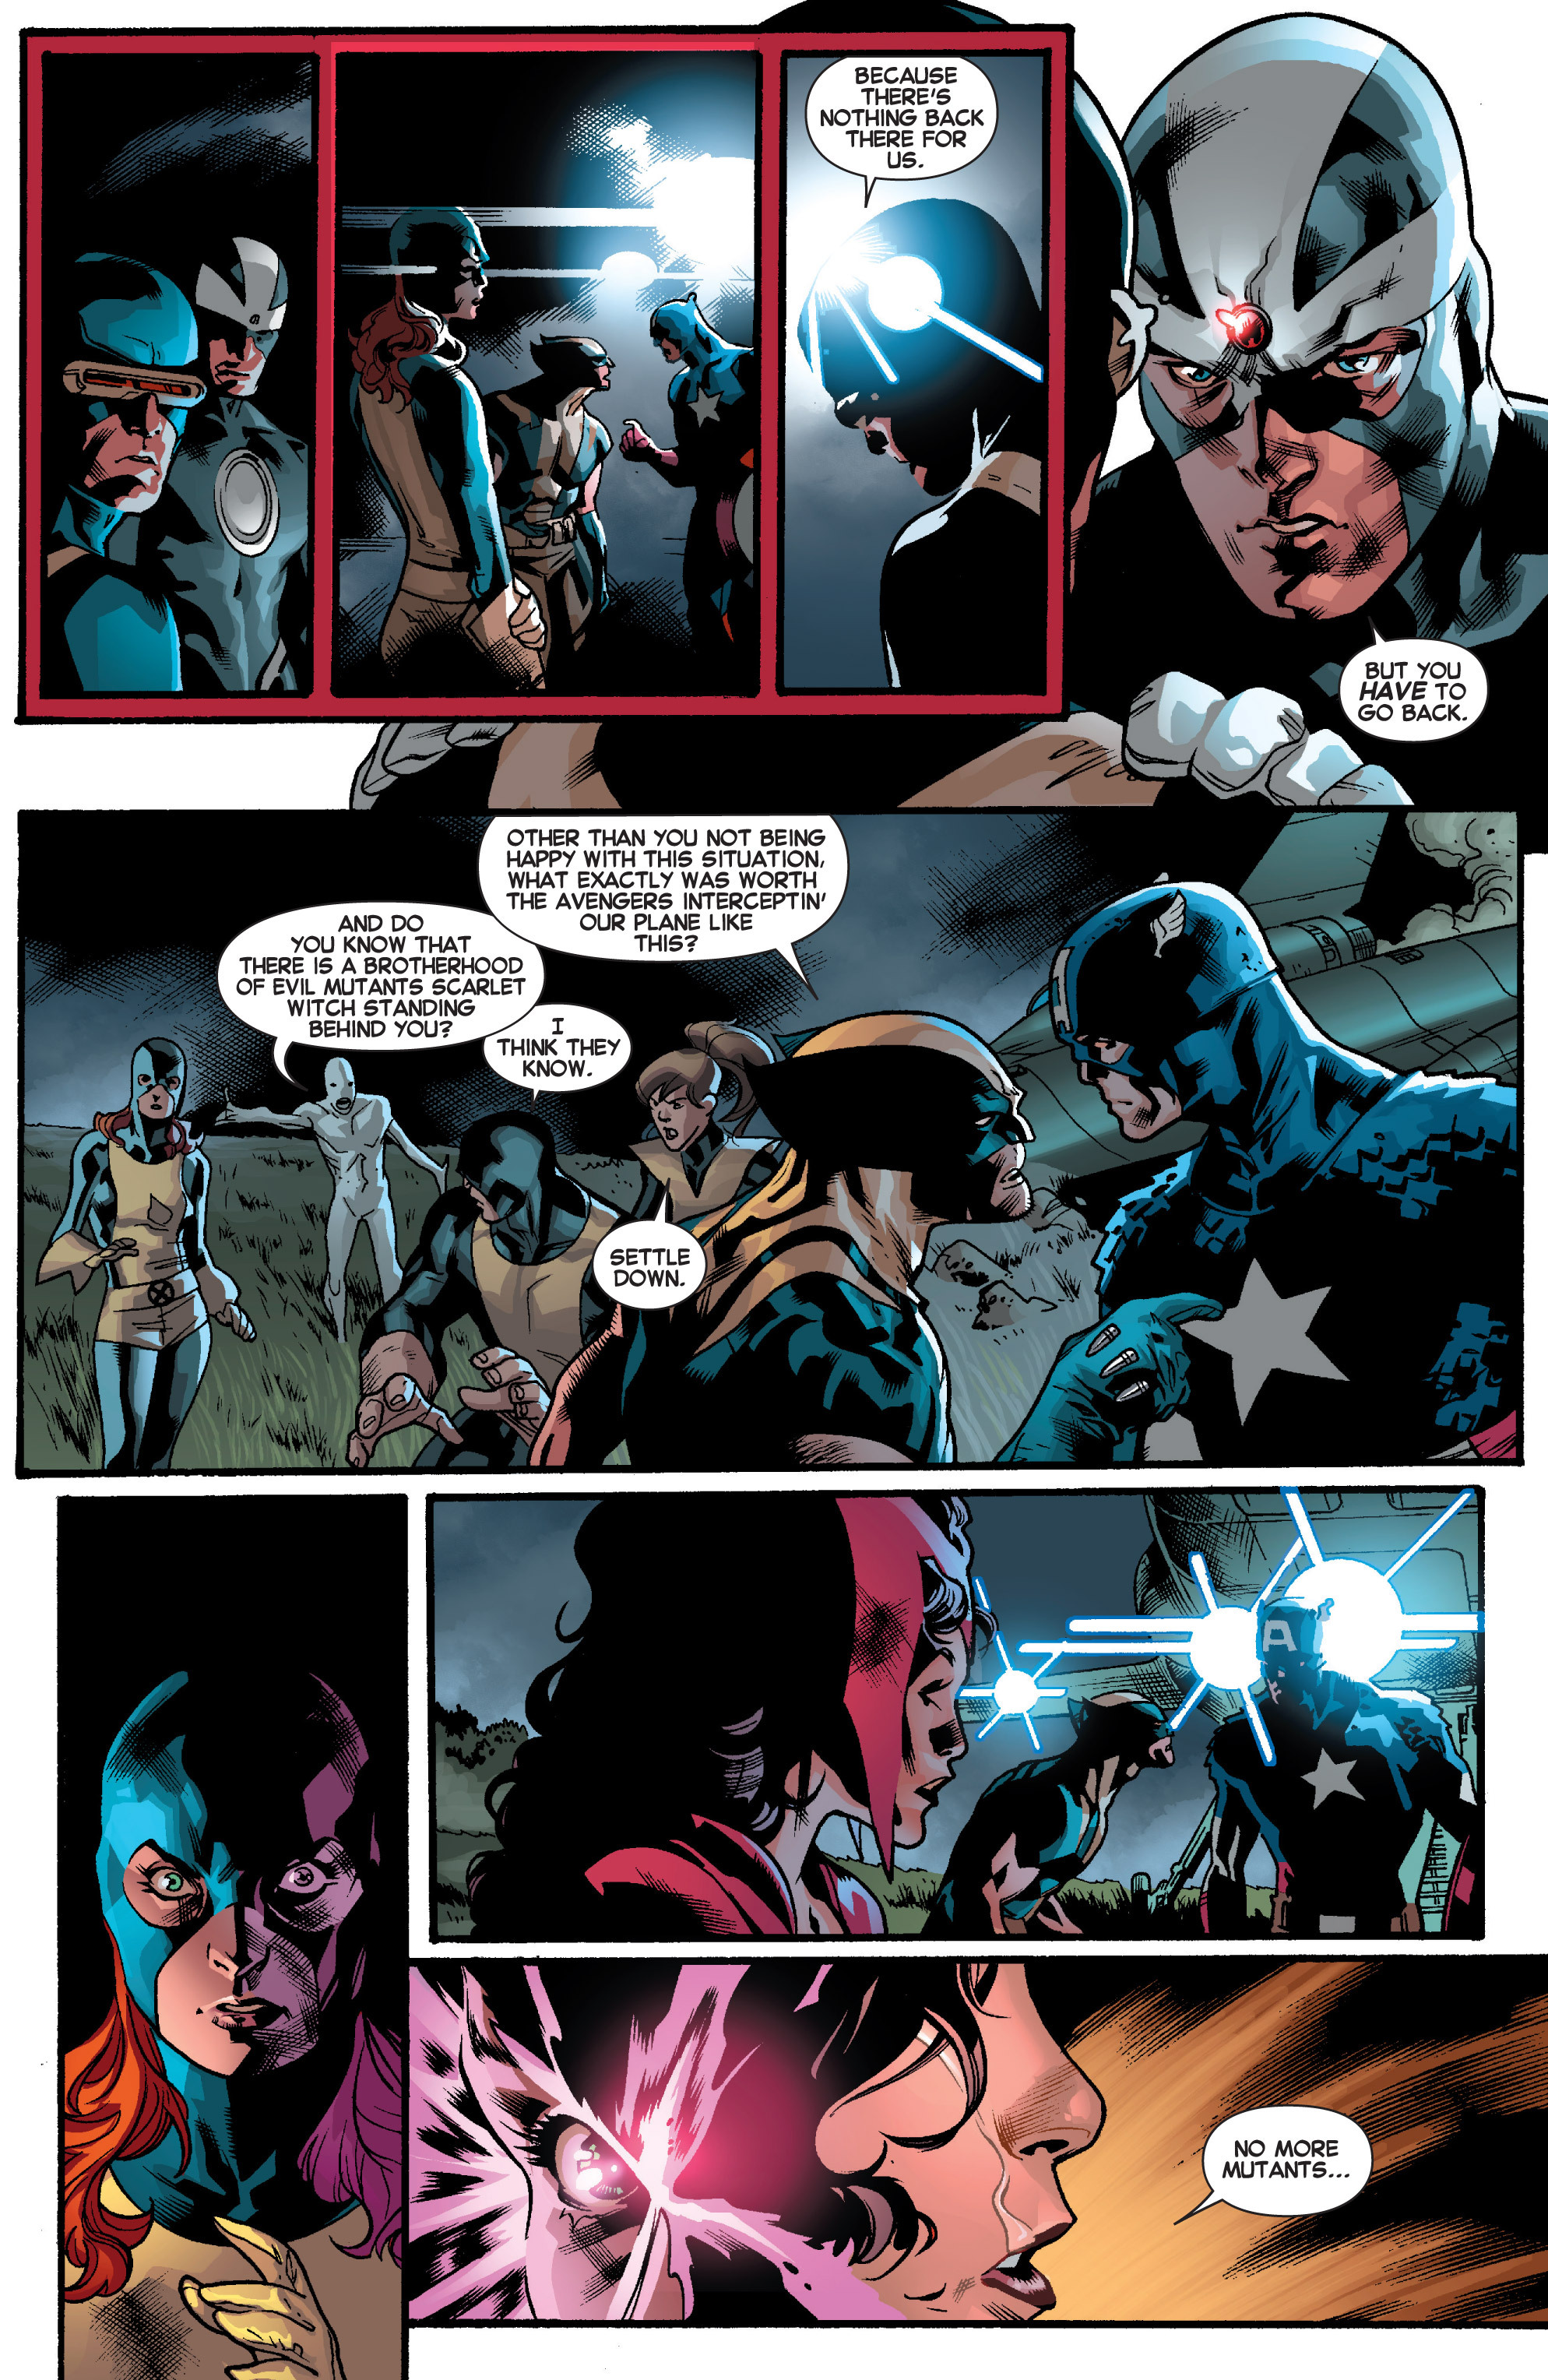 Read online All-New X-Men (2013) comic -  Issue # _Special - Out Of Their Depth - 31